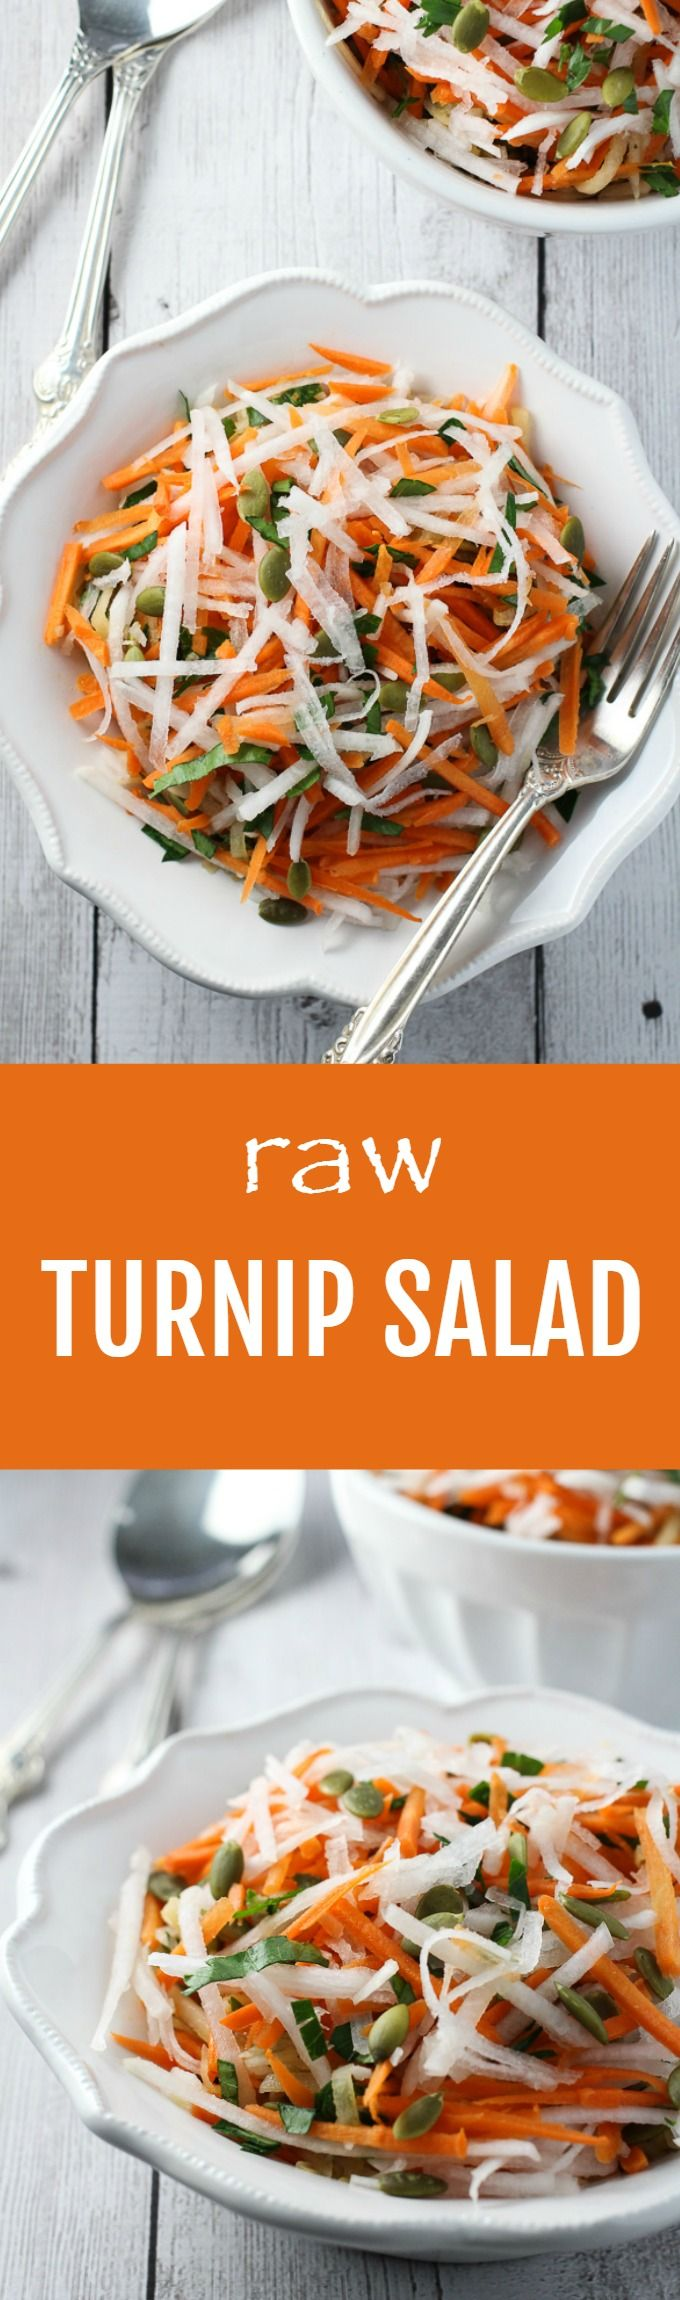 A very easy to prepare Raw Turnip Salad Recipe. Just grate the vegetables, add the dressing and combine everything in a salad bowl. Full of fiber and healthy nutrients.